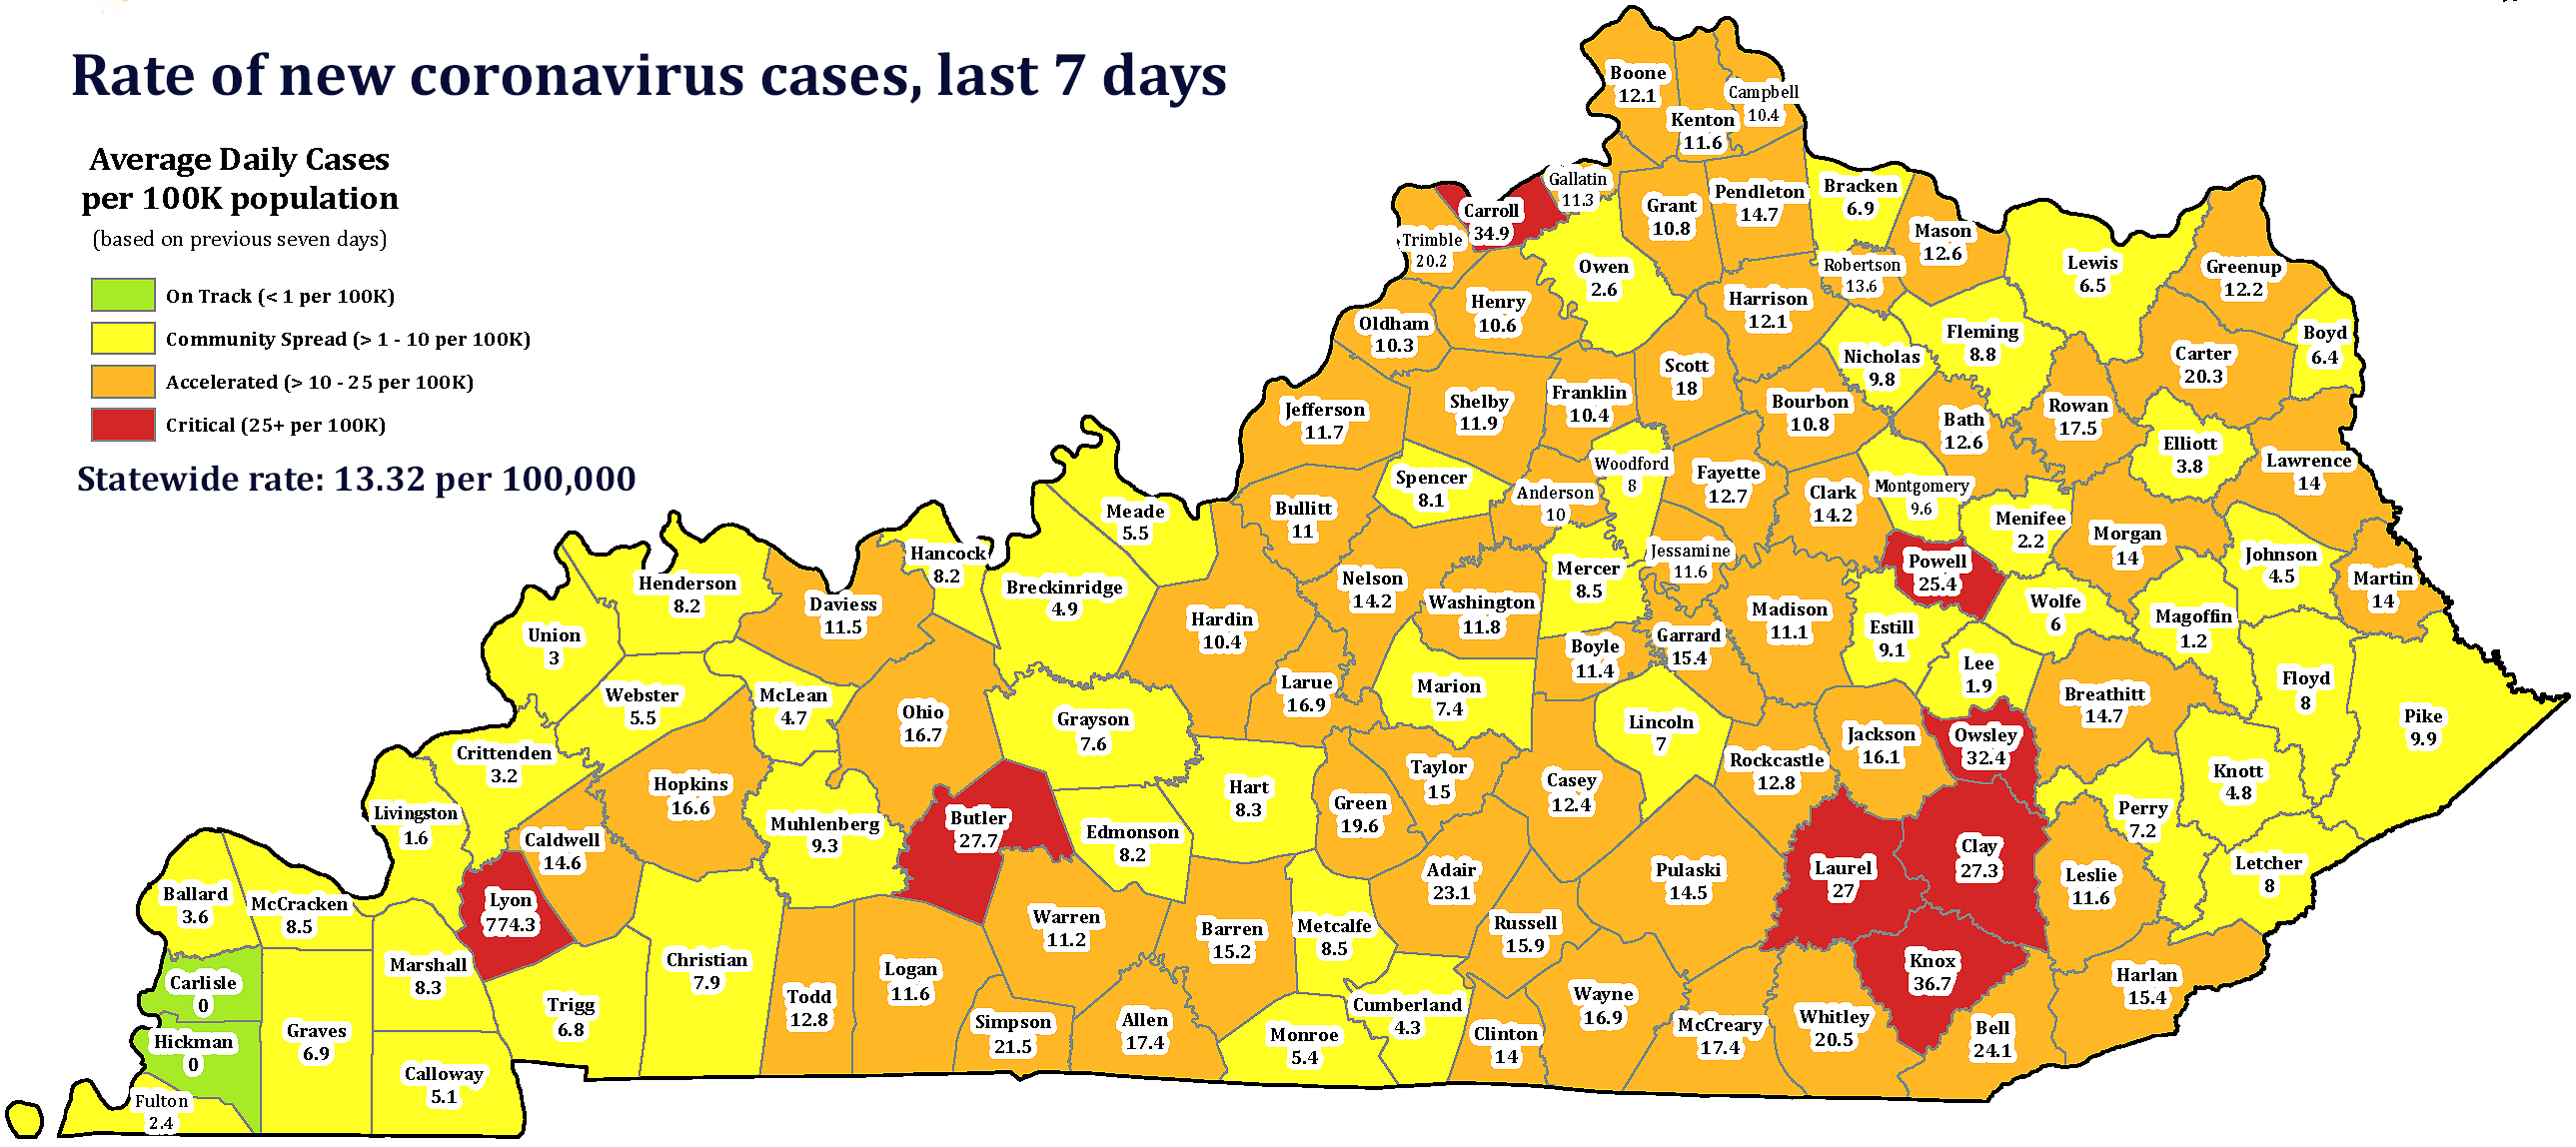 State Dept. for Public Health map, relabeled by Ky. Health News